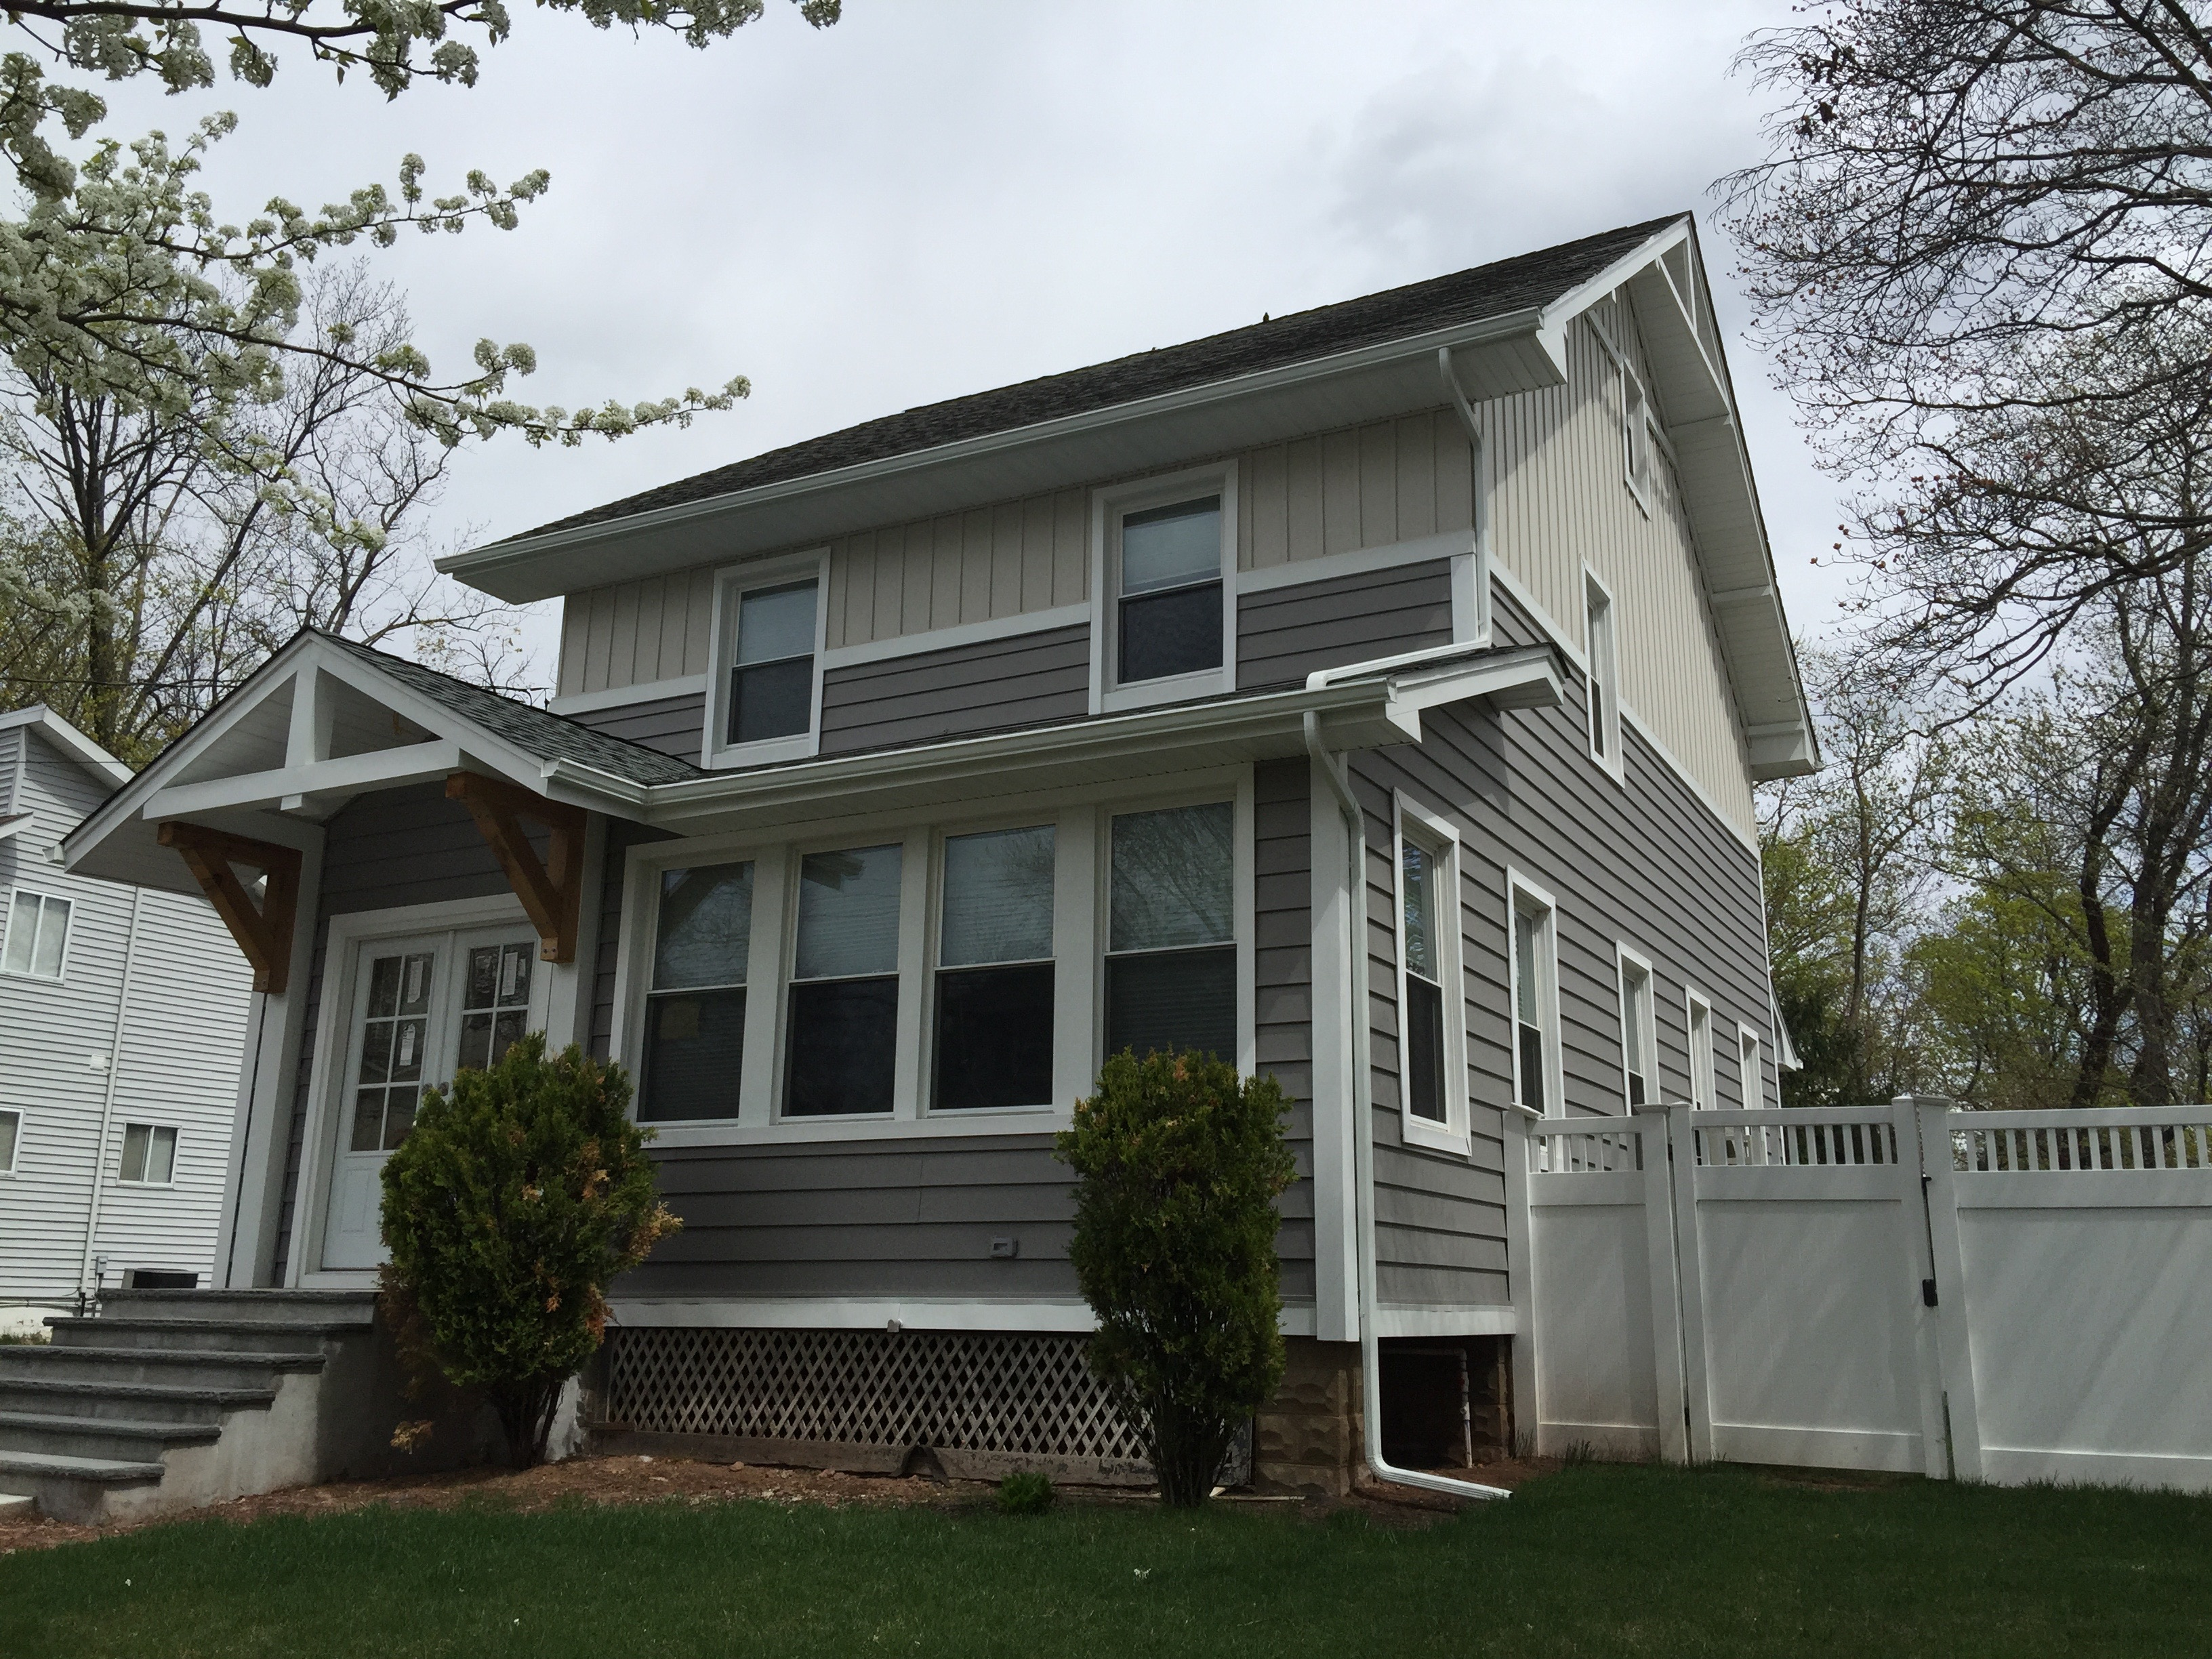 New jersey passaic county wayne - Crane Board Insulated Vinyl Siding Installation Contractor Nj New Jersey Foam Backed Passaic County Bergen Essex